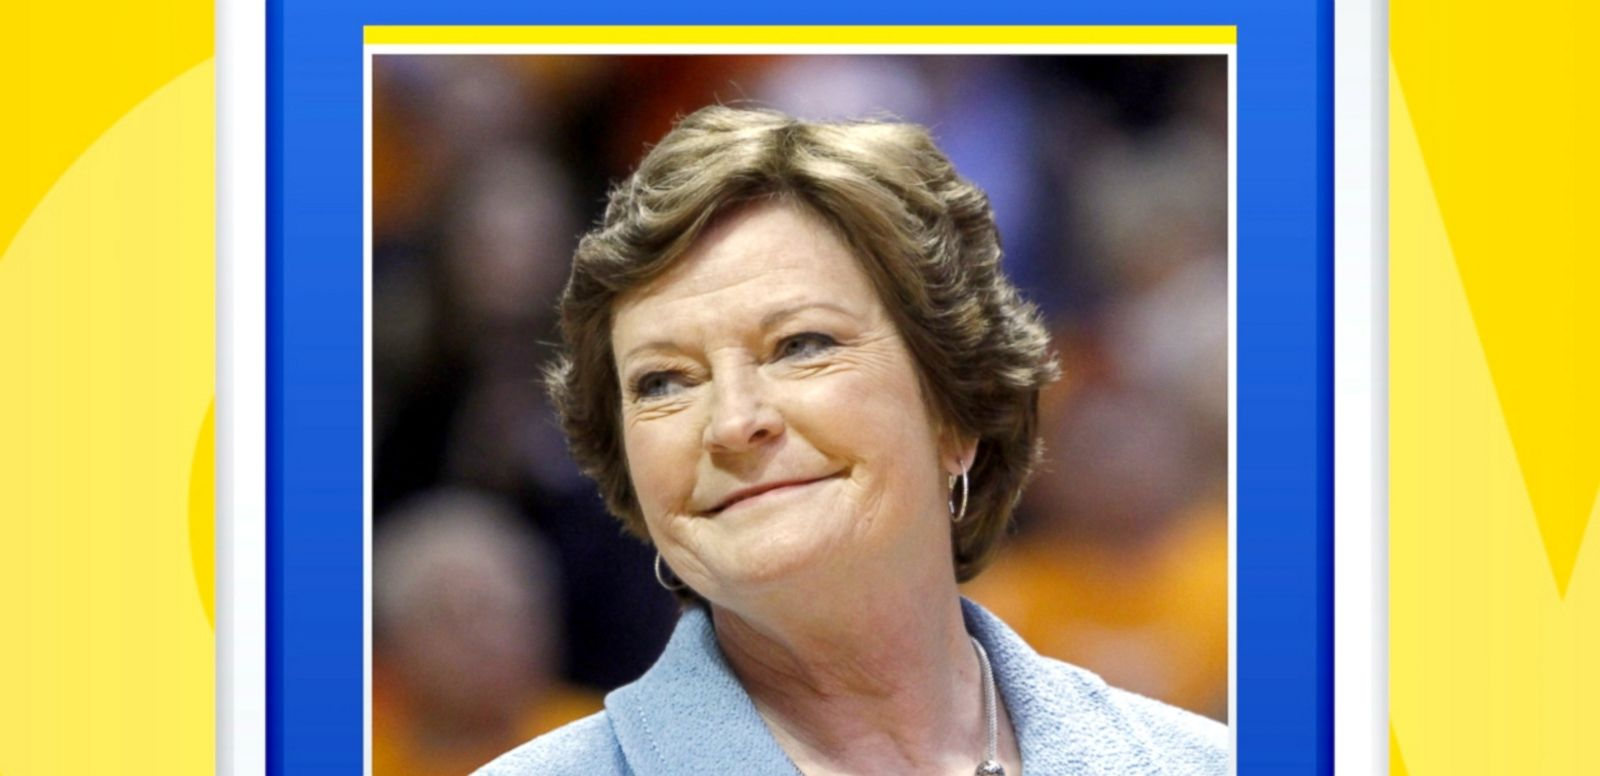 VIDEO: Pat Summitt's family said the last few days have been difficult as her Alzheimer's disease progresses.